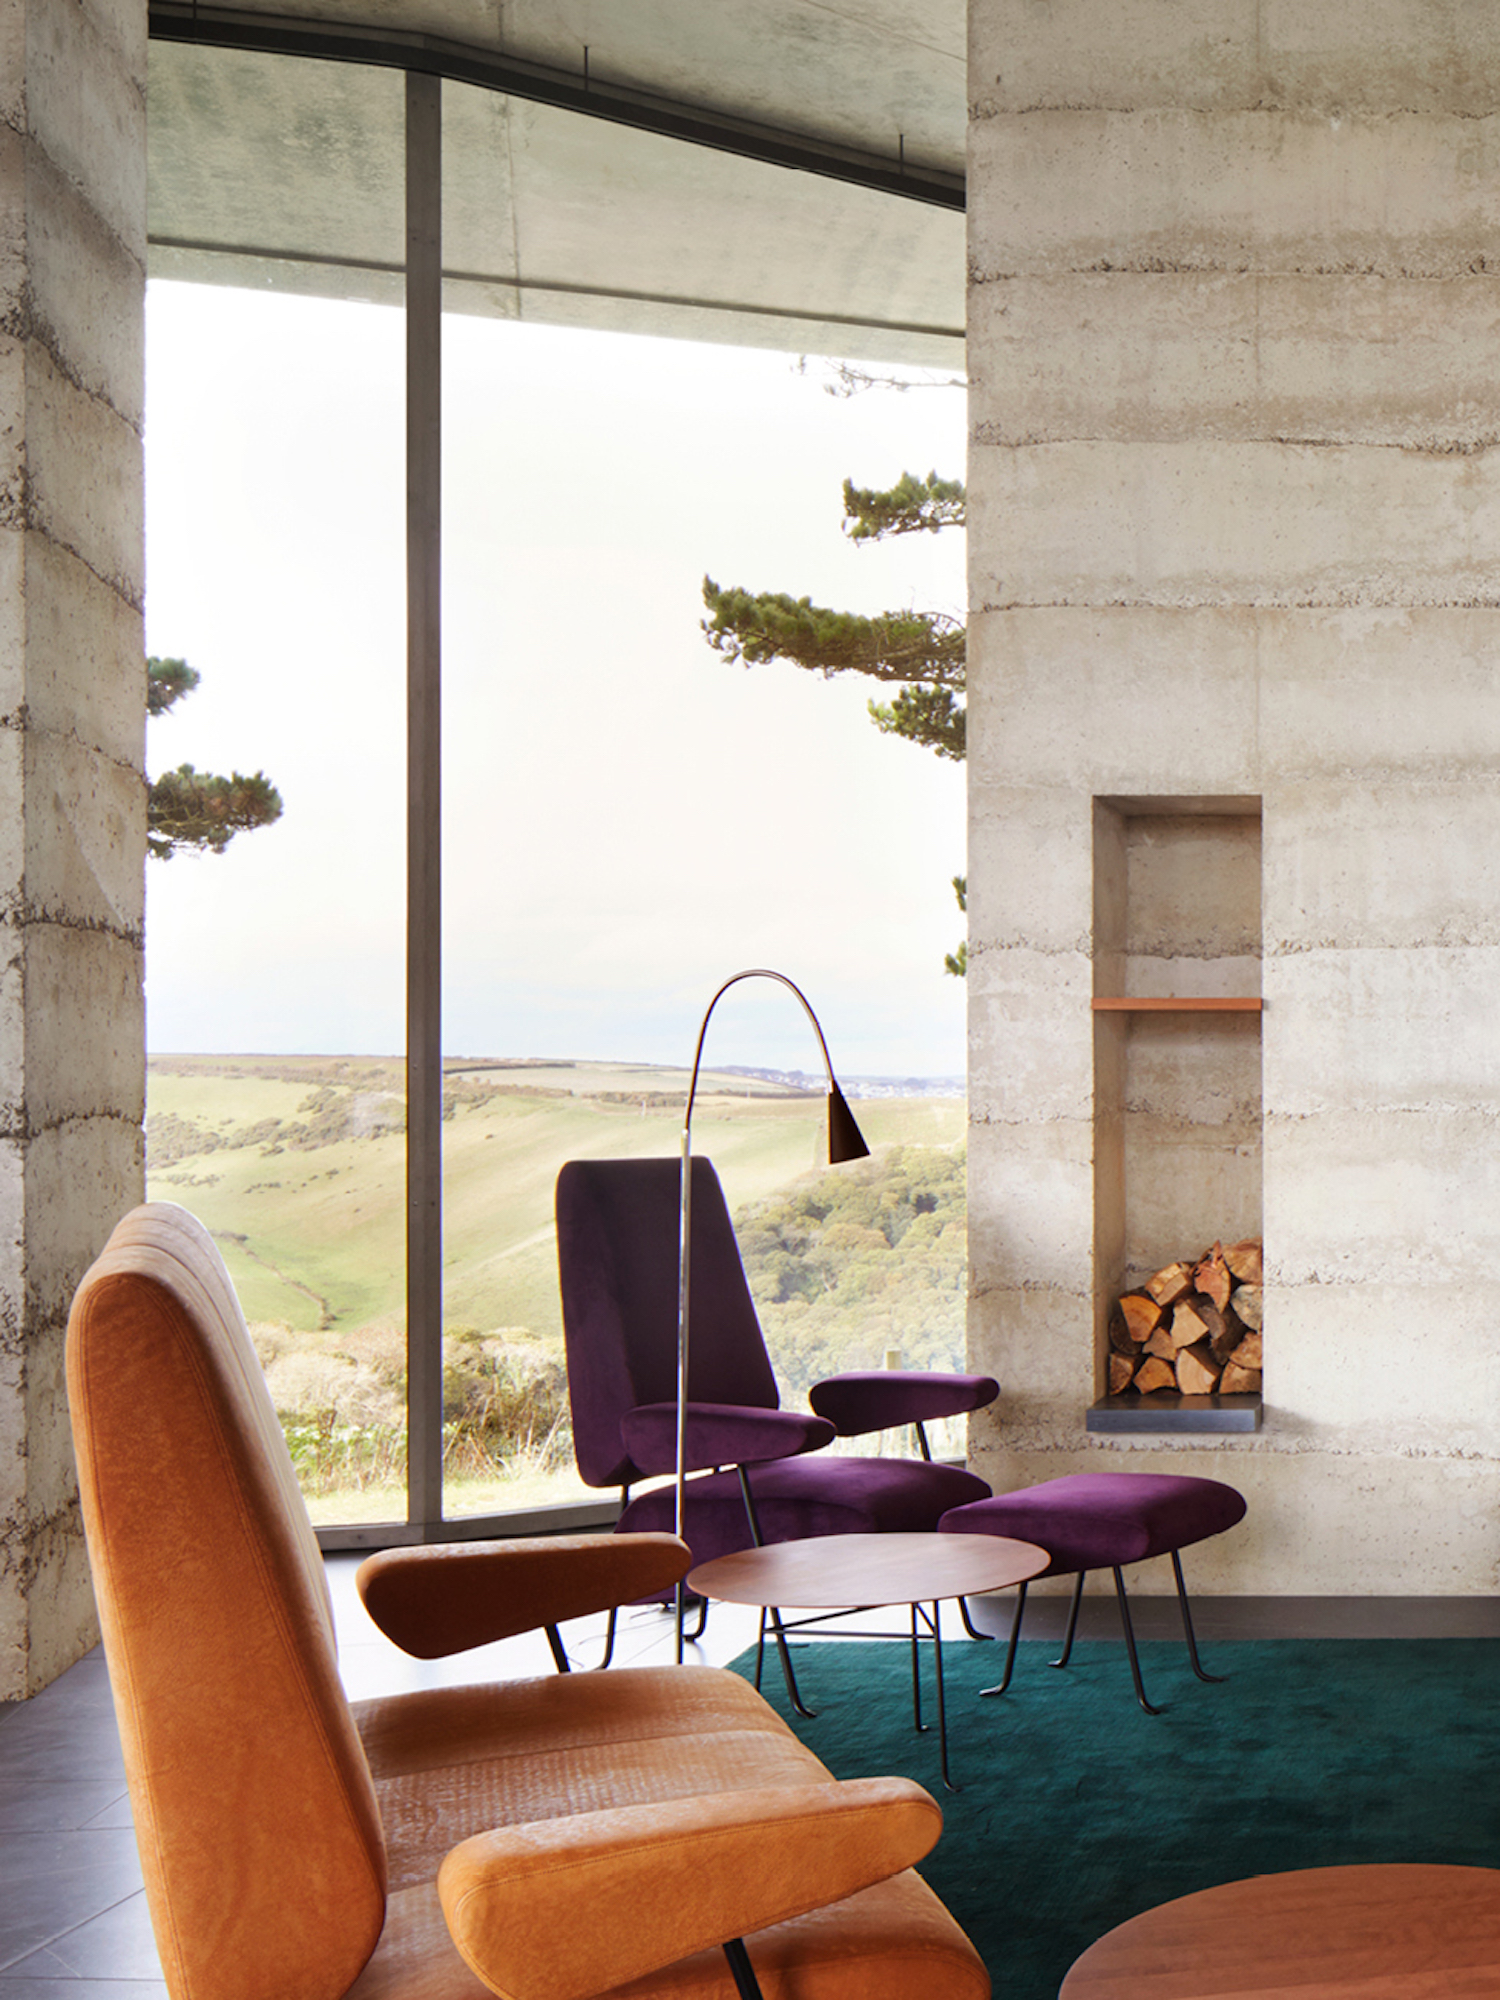 est living chivelstone house by peter zumthor 09